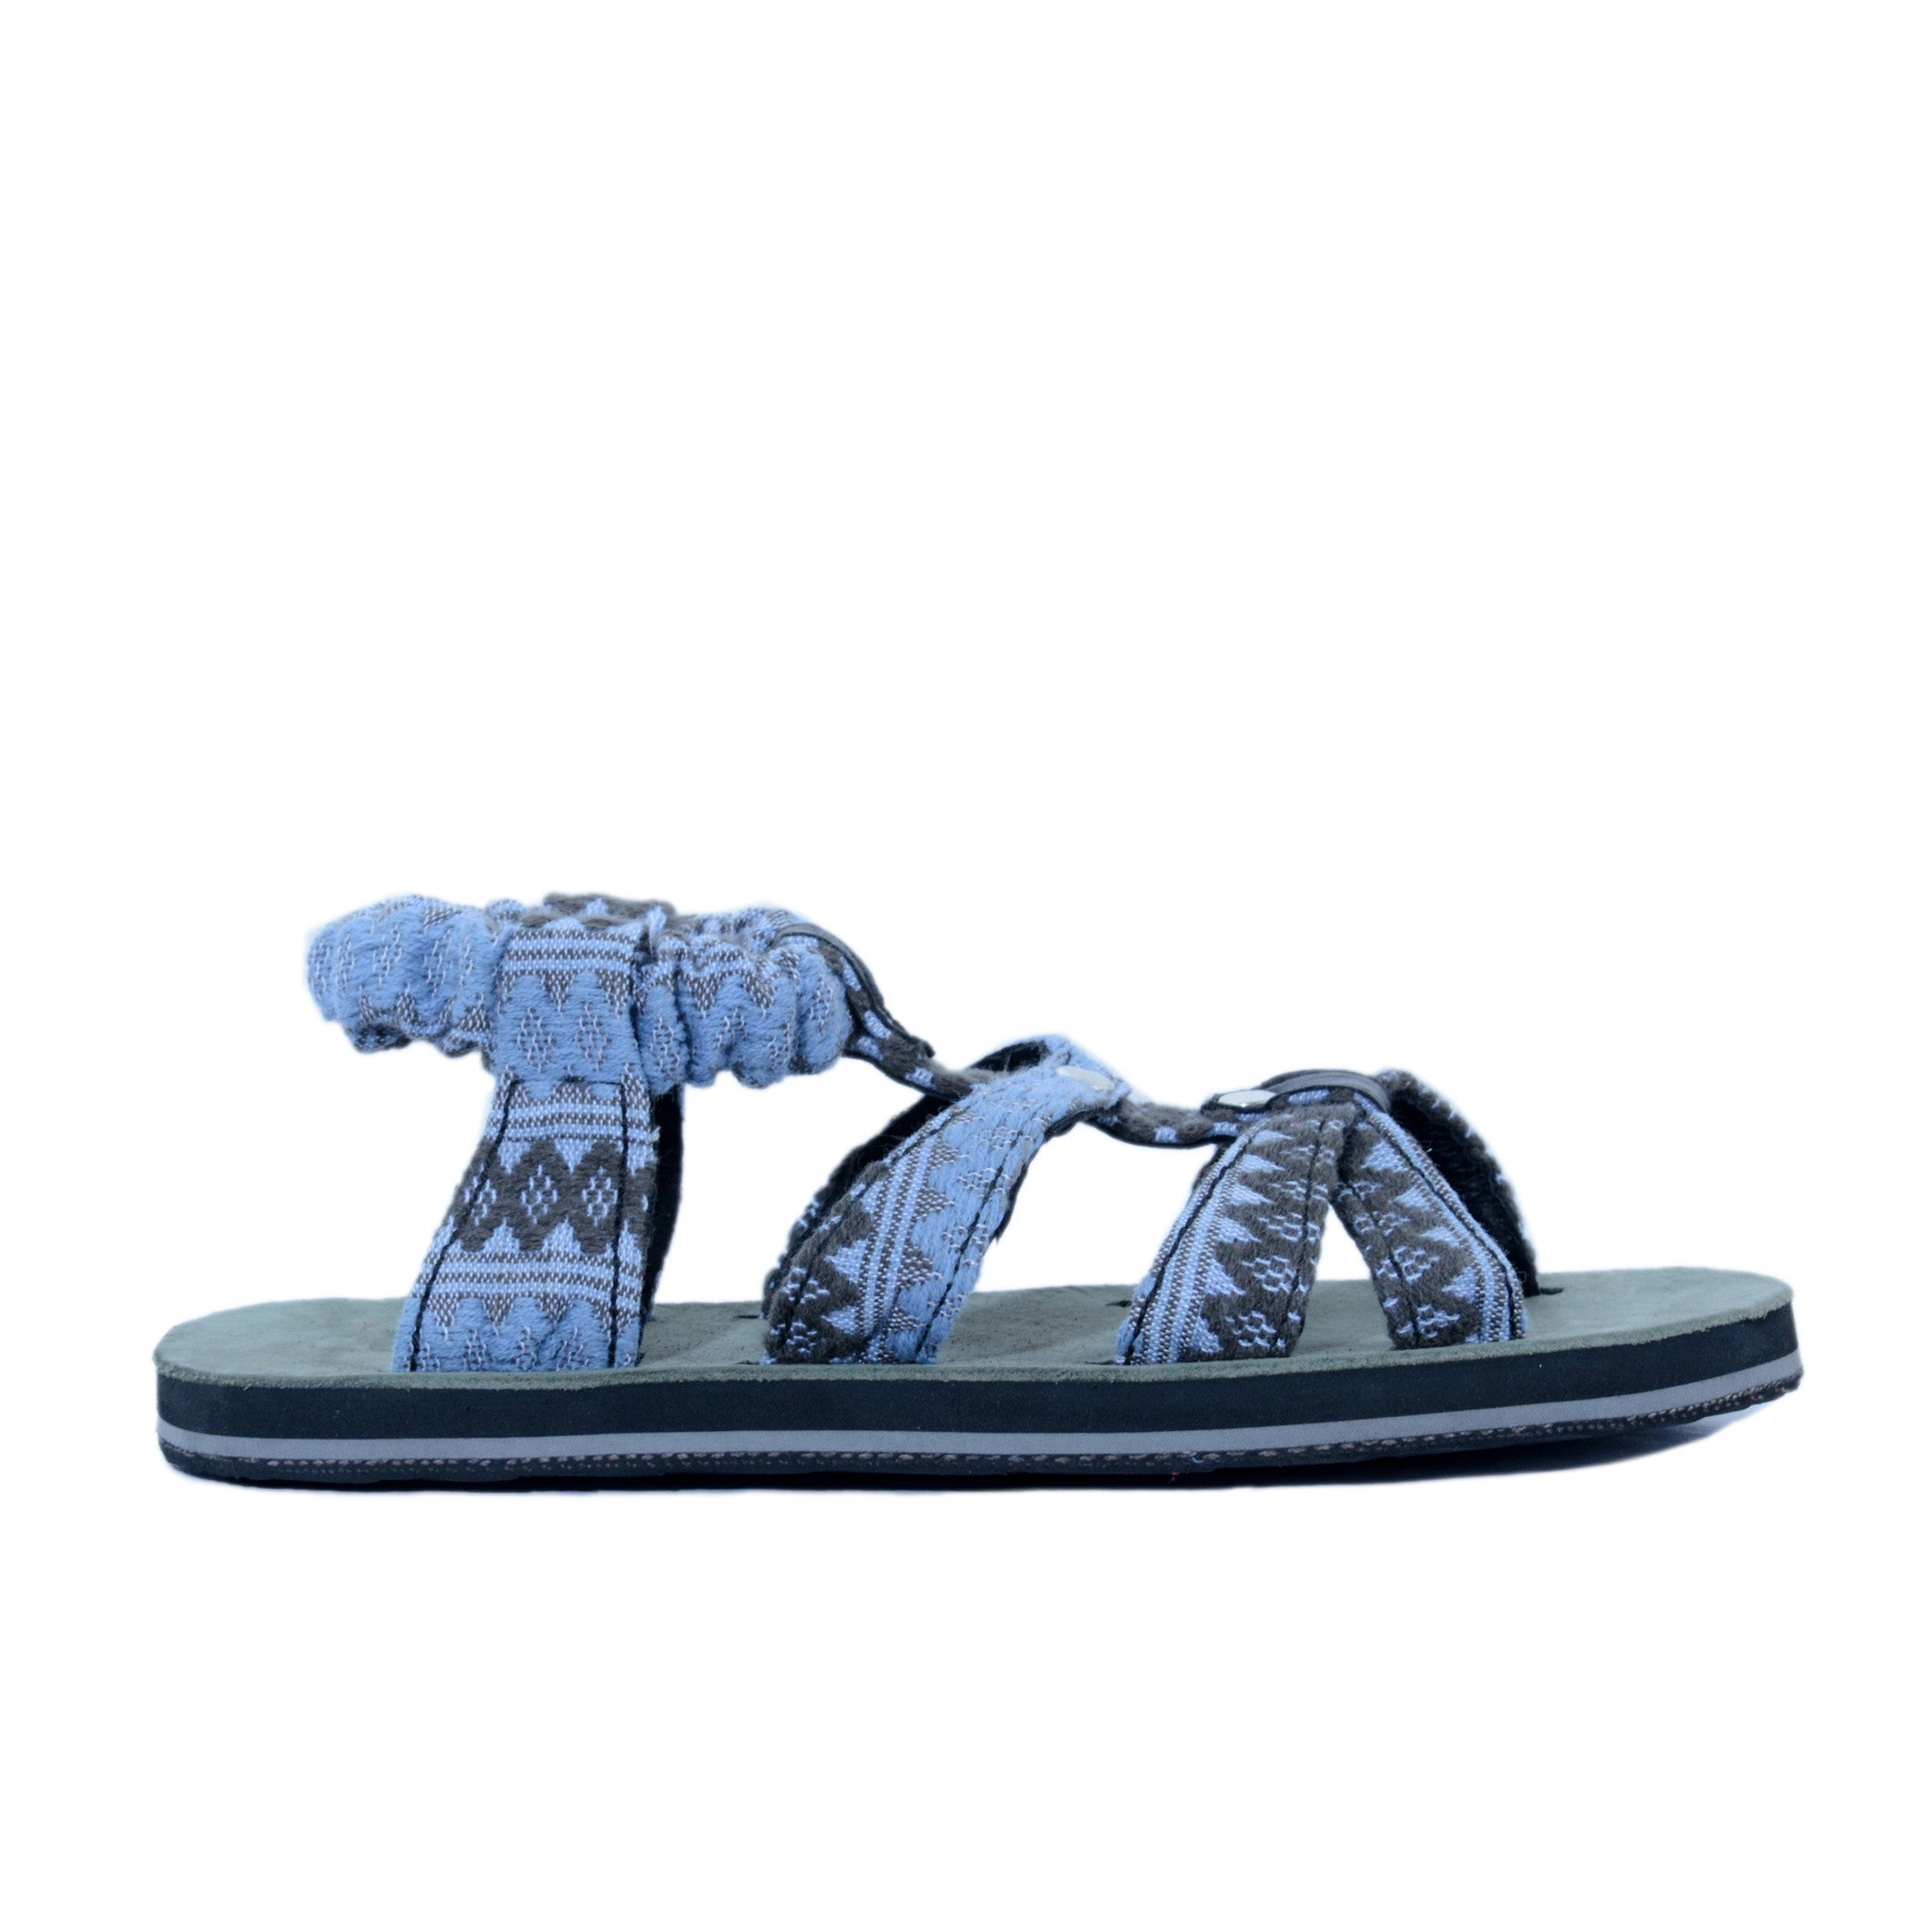 solerebels Light Blue loop FREEDOM wyld Sandals